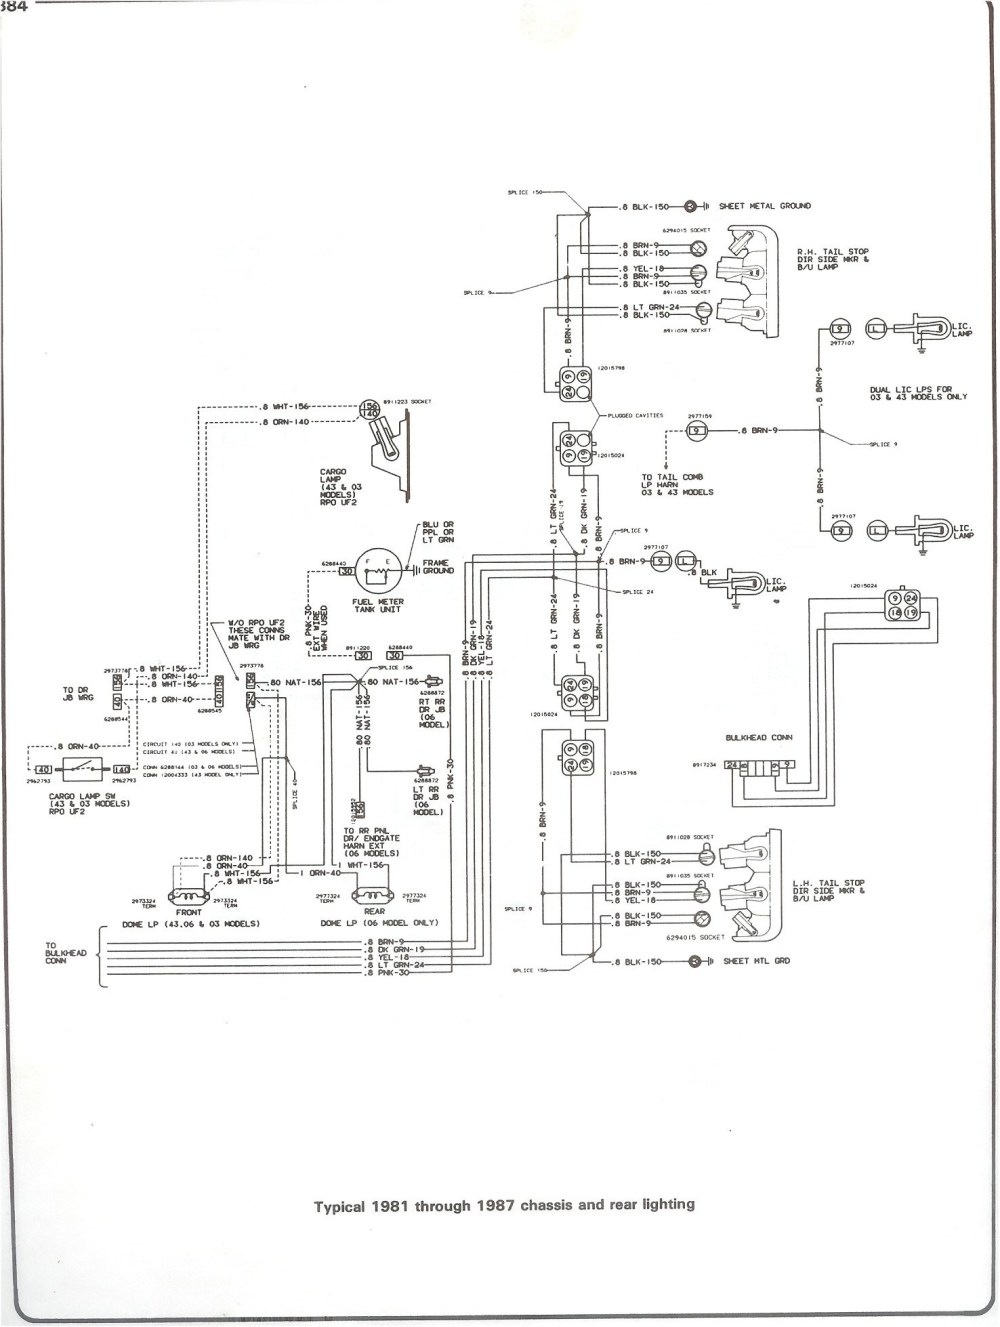 medium resolution of 82 gmc truck wiring diagram schematic wiring diagram show82 chevy truck wiring diagram wiring diagram expert